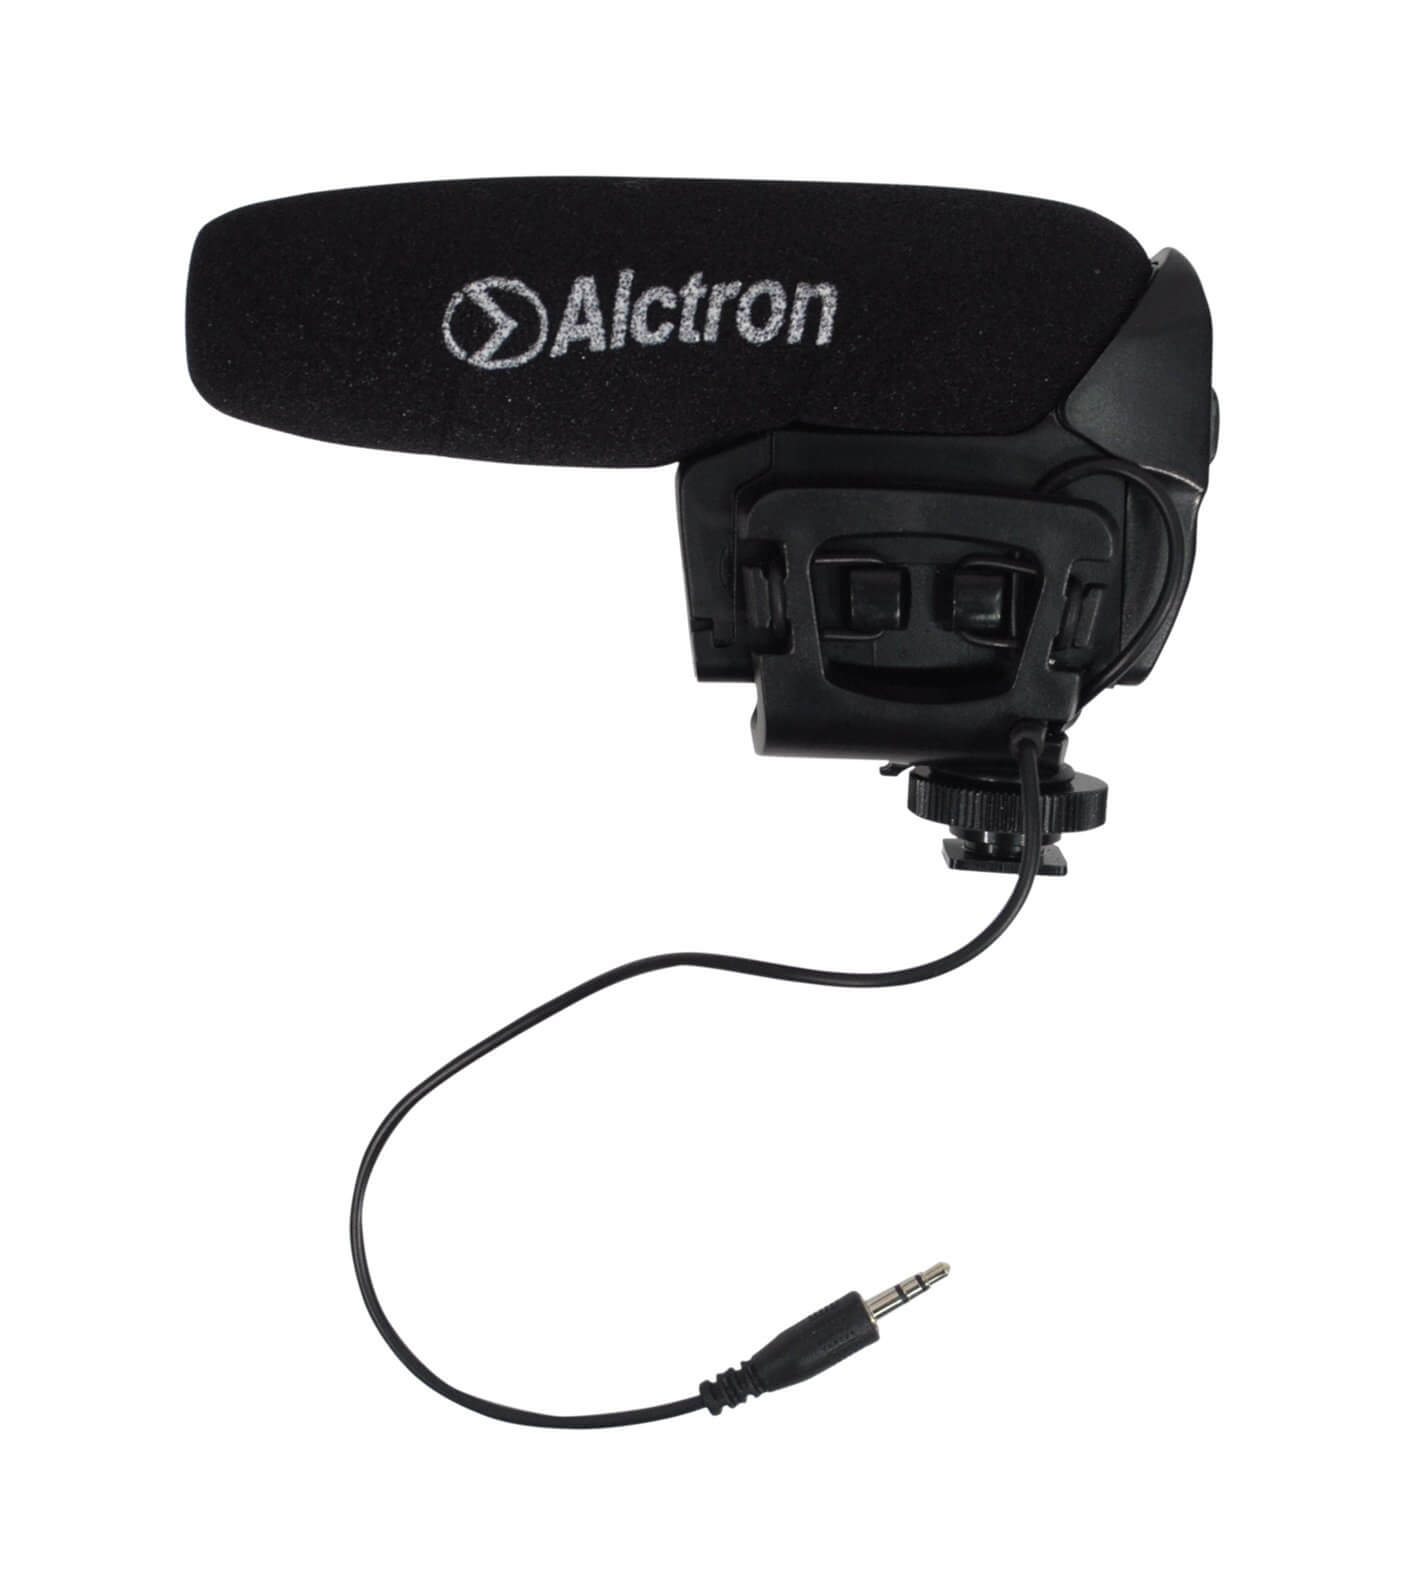 Alctron Broadcast Live Recording Video Camera Microphone